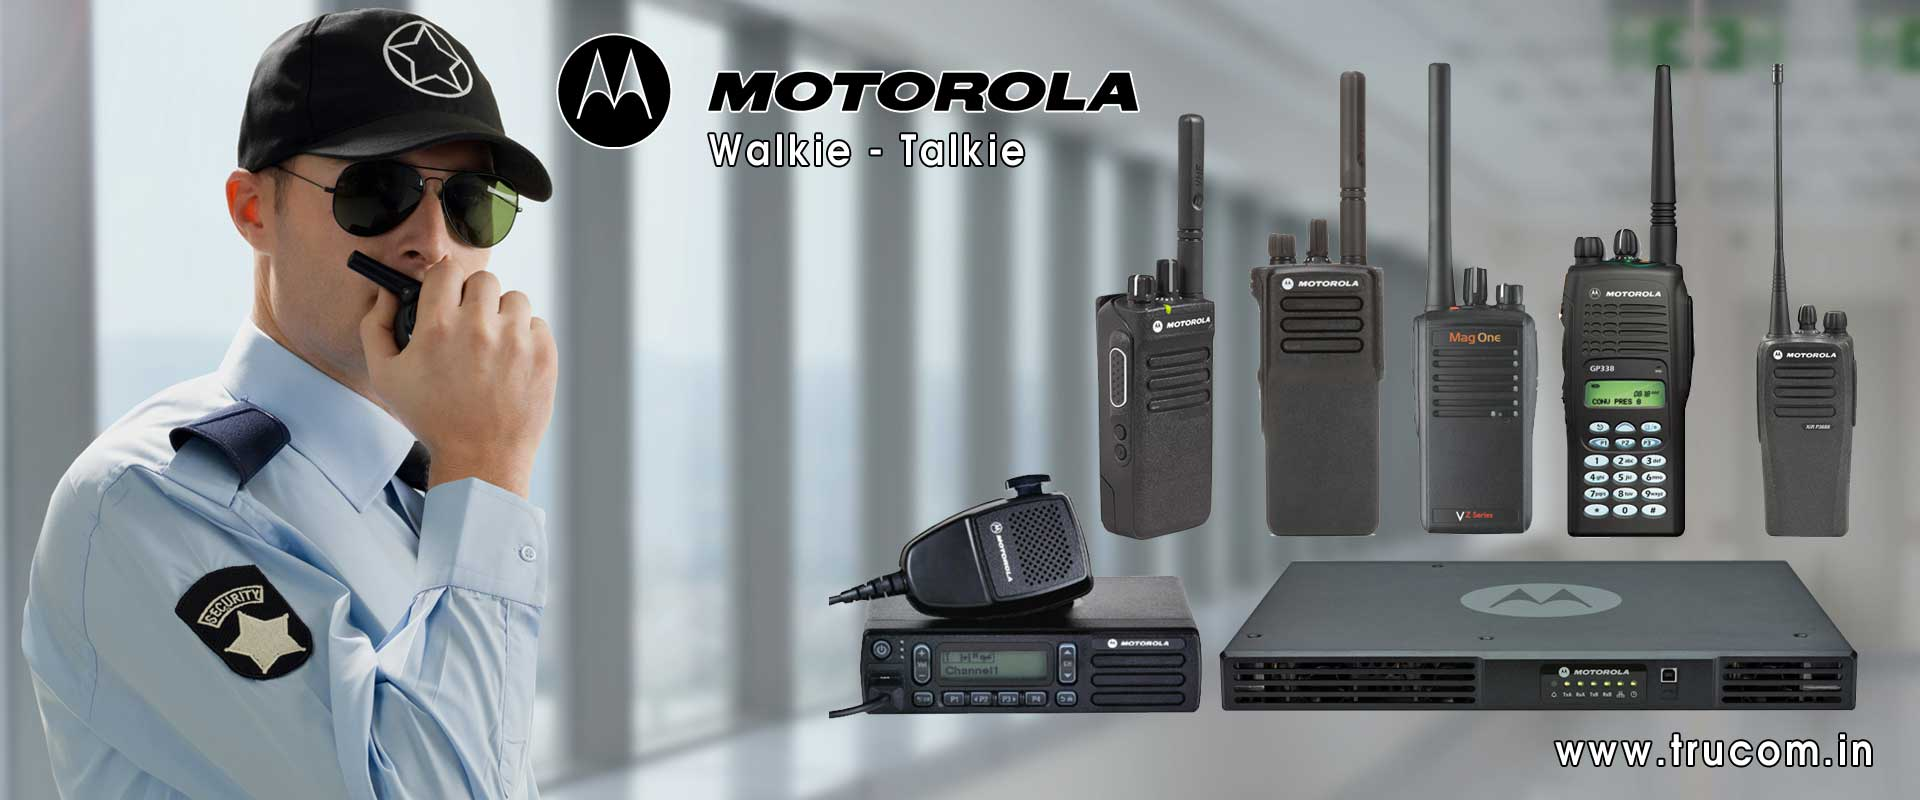 Motorola walike talkie dealers distributors in india Motorola authorised dealer in India Delhi Motorola walkie talkie suppliers India delhi